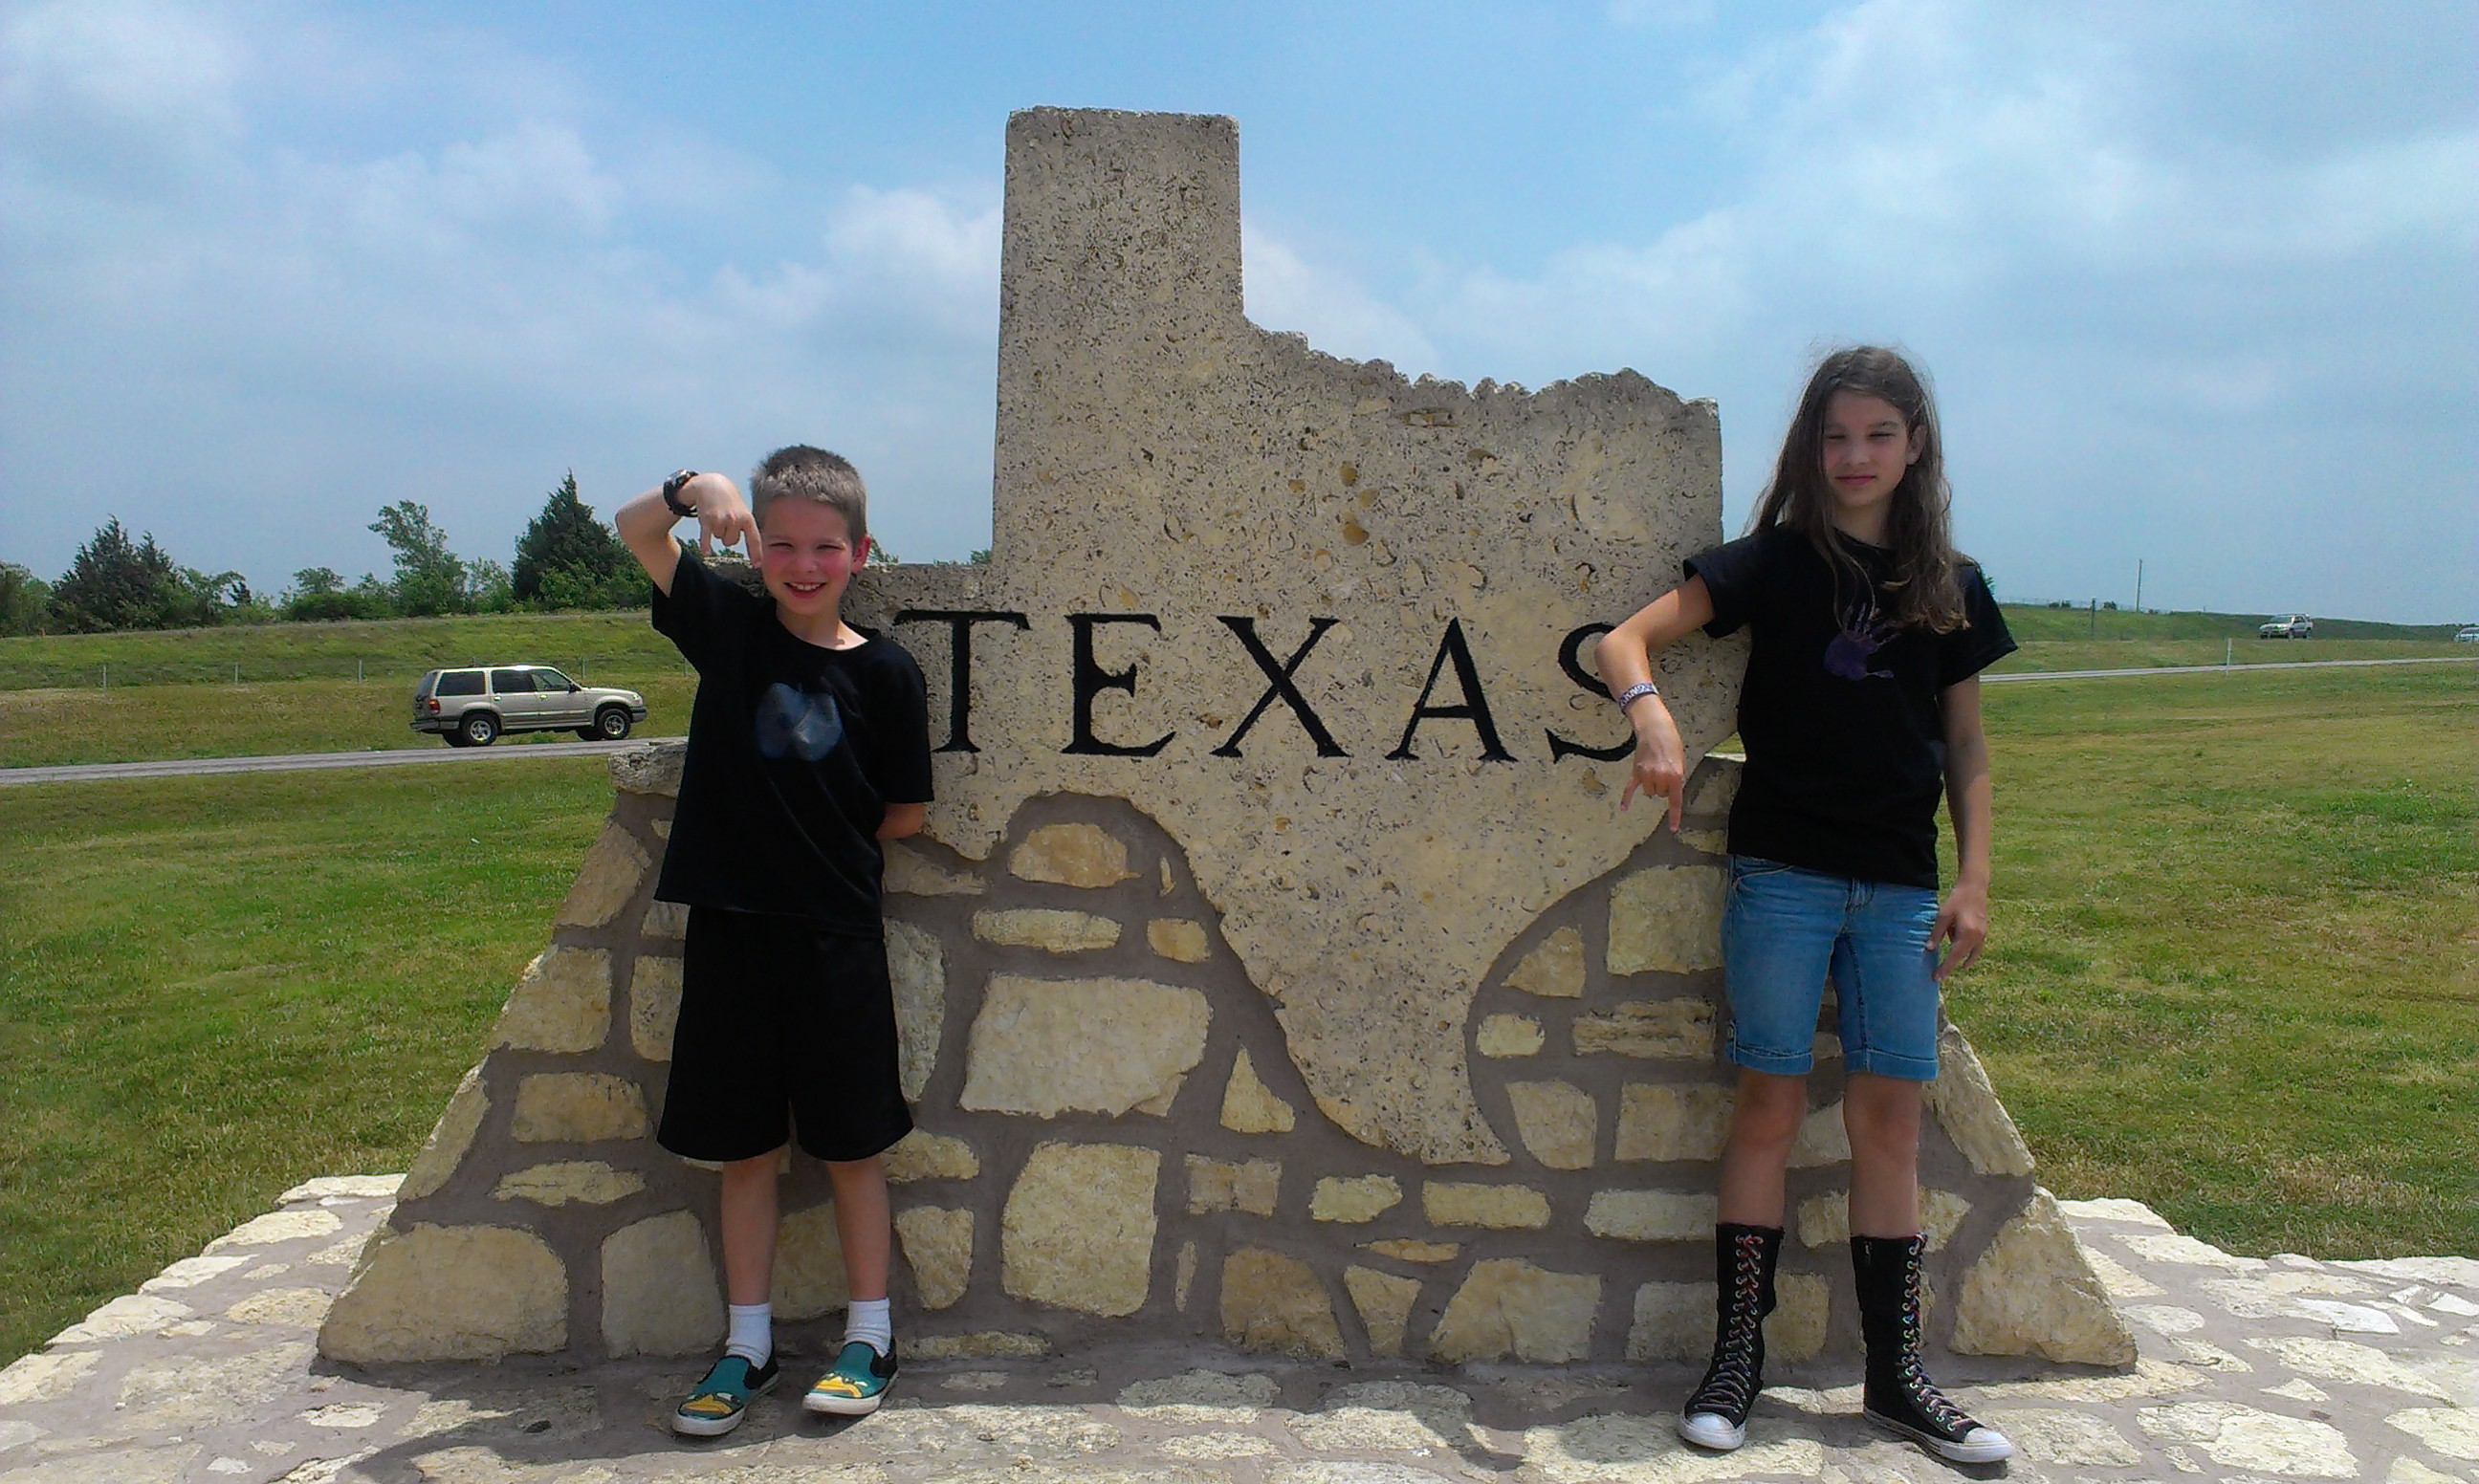 We had to stop at the Texas sign and show our respect!